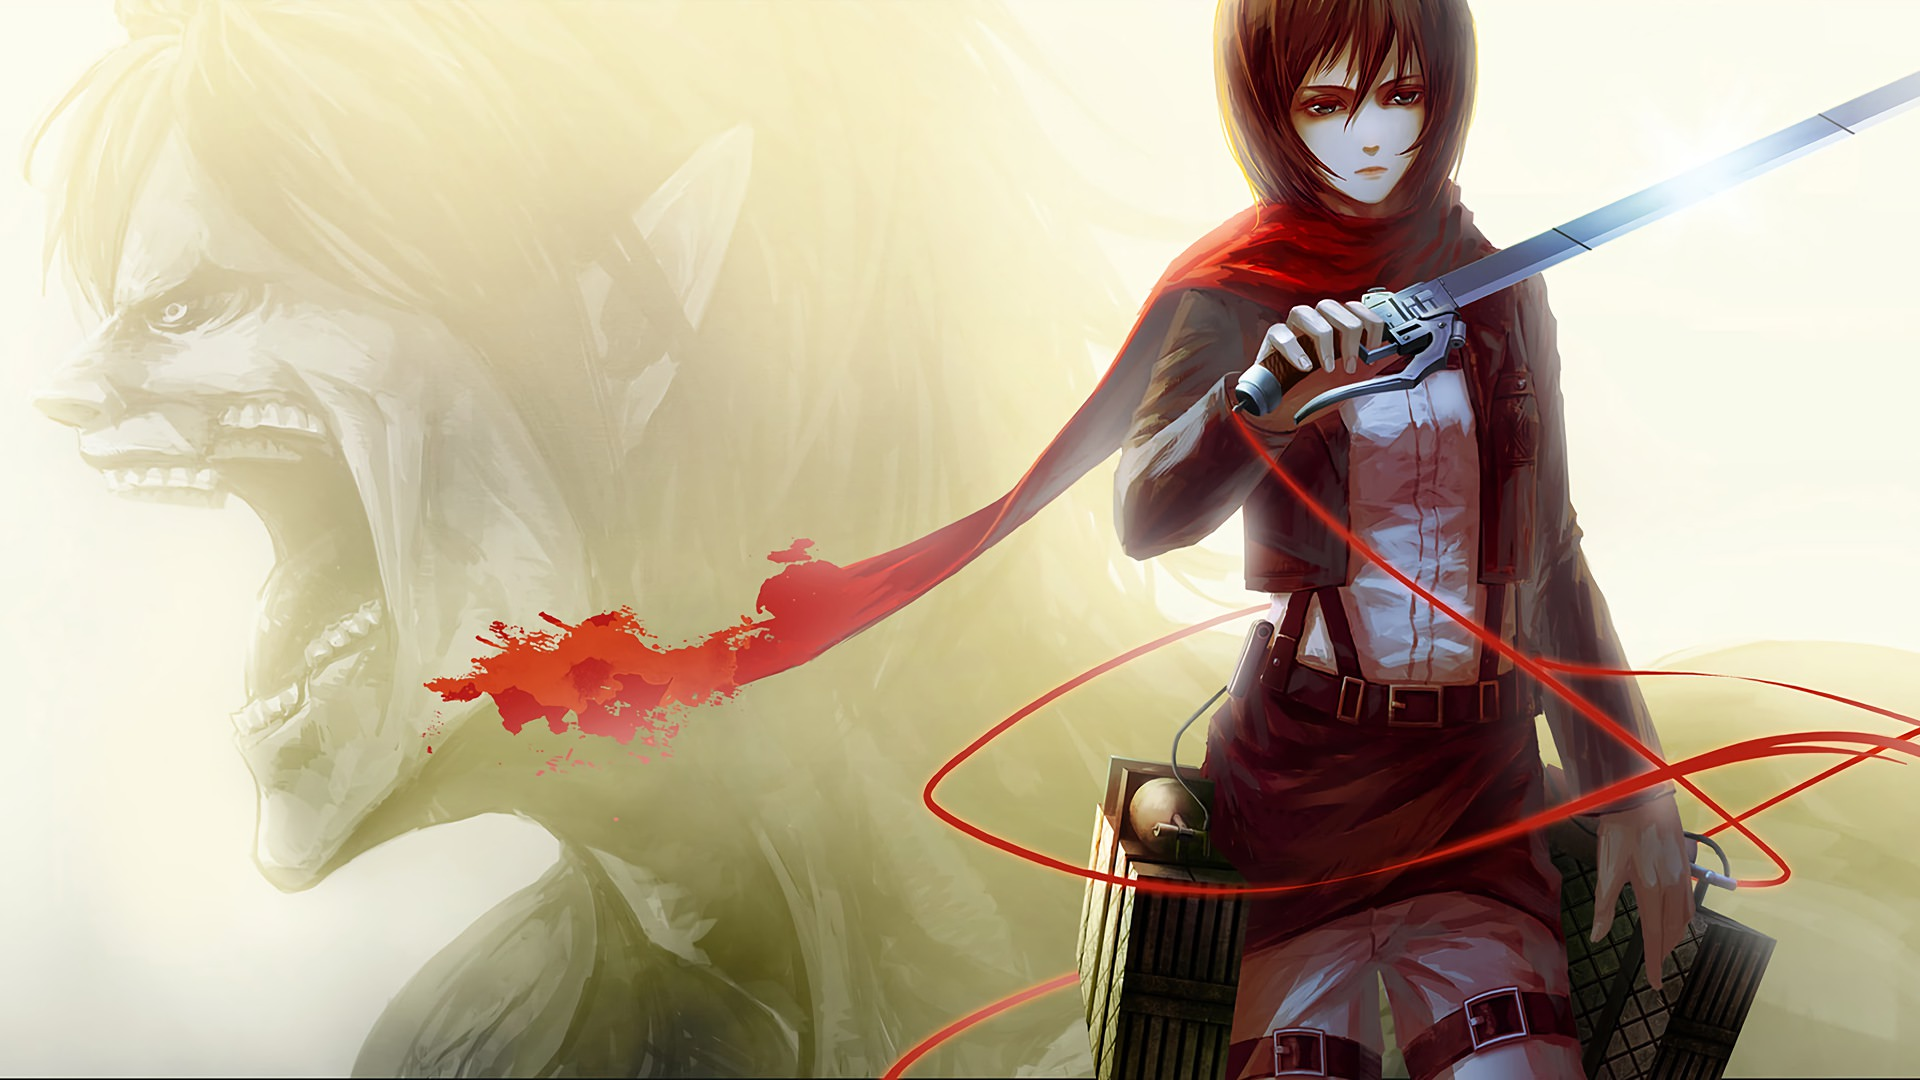 Attack On Titan Mikasa Wallpapers Top Free Attack On Titan Mikasa